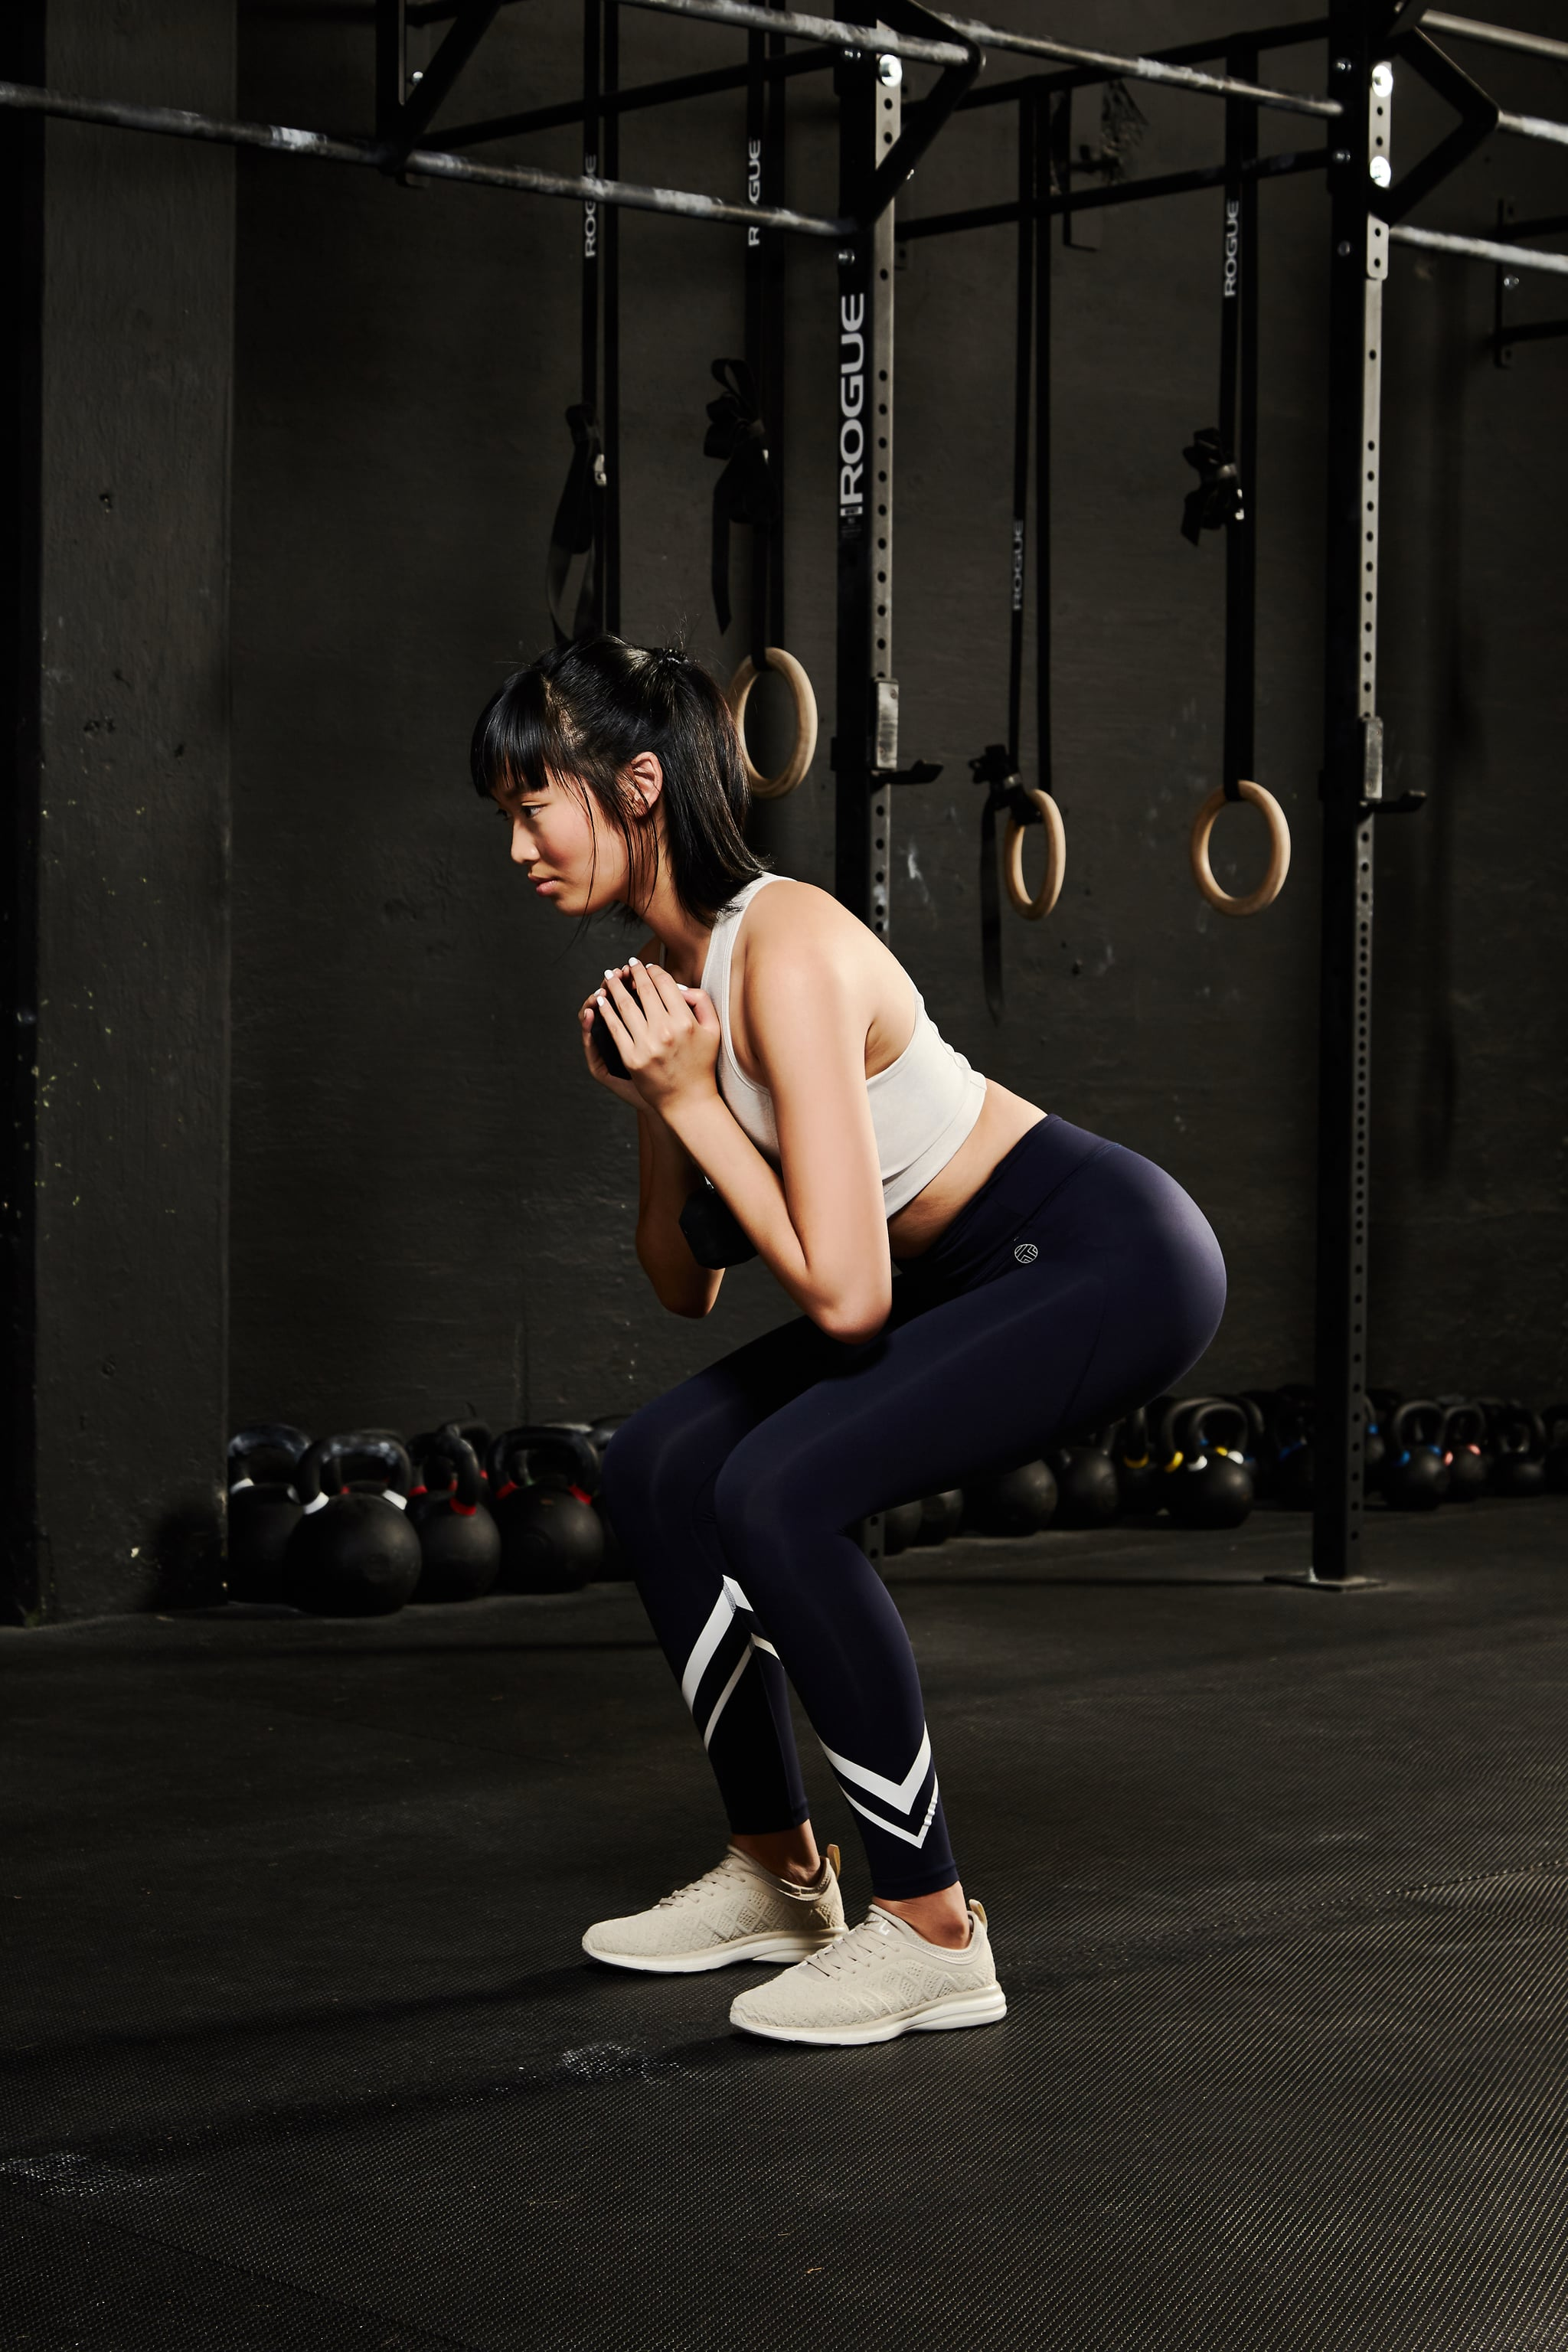 A 30-Second Trick That Will Beef Up Your Squat Game and Help You Grow Your Bum